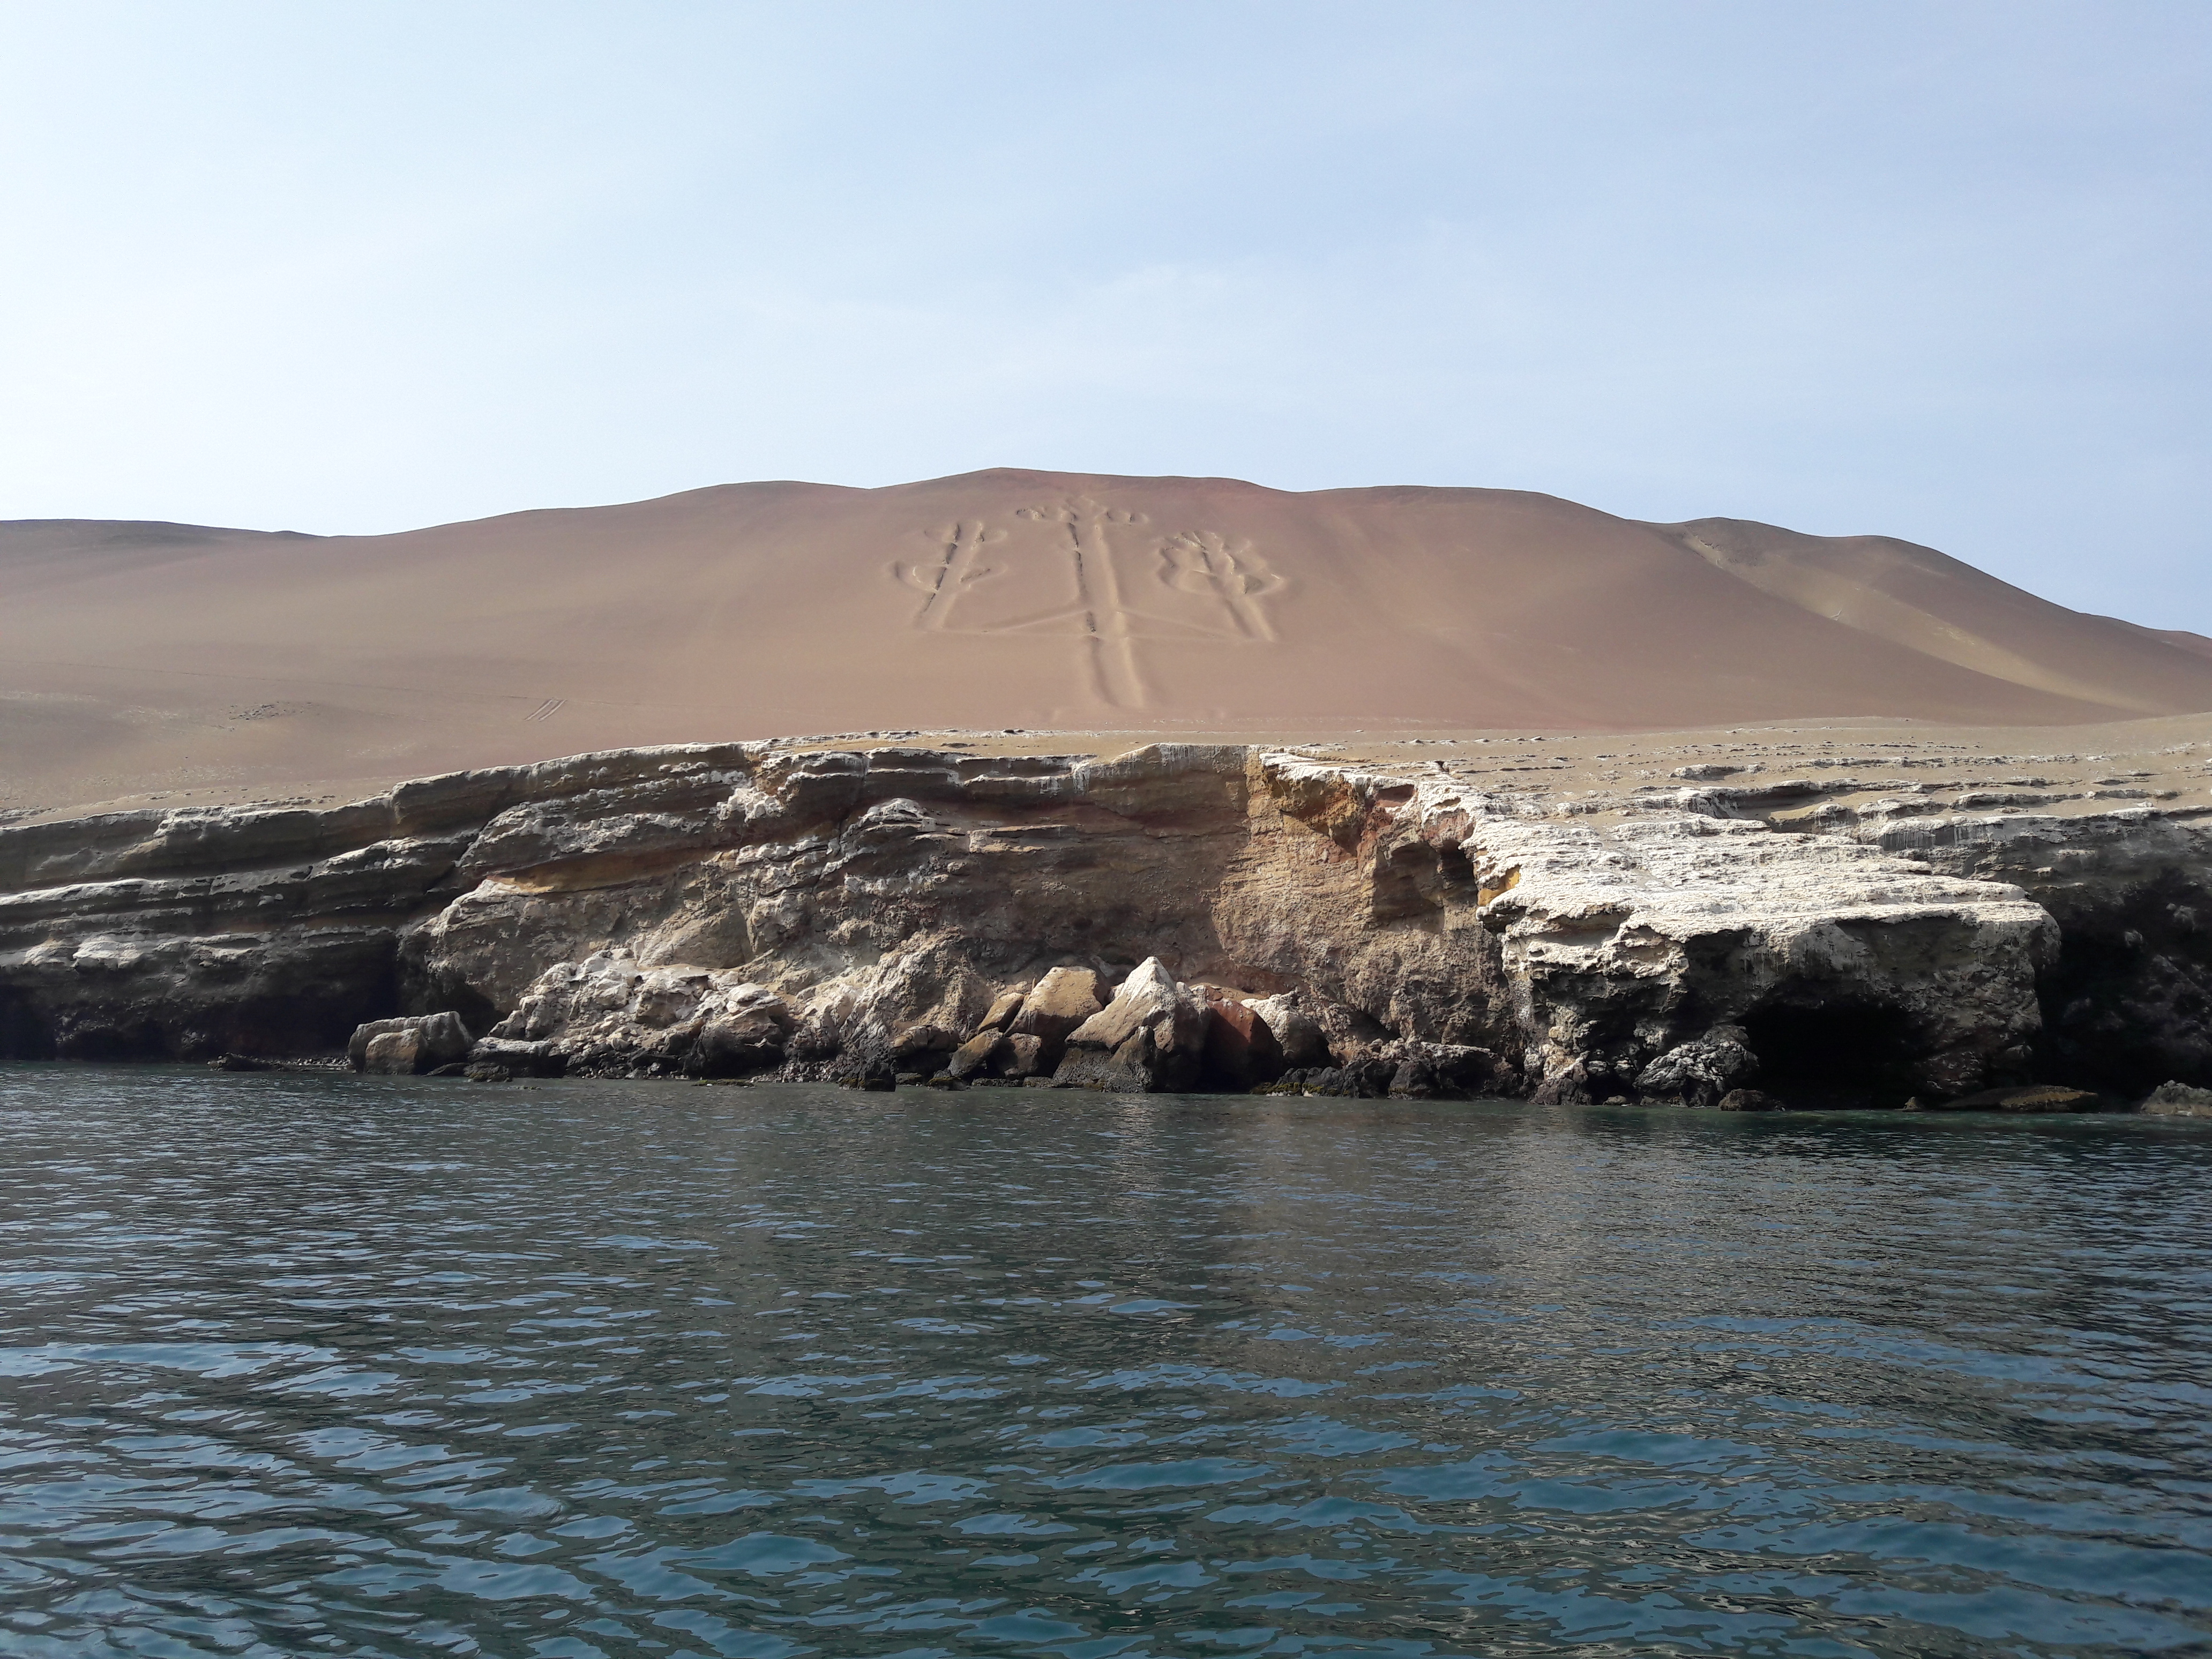 Sea and rocks, with the desert in the background